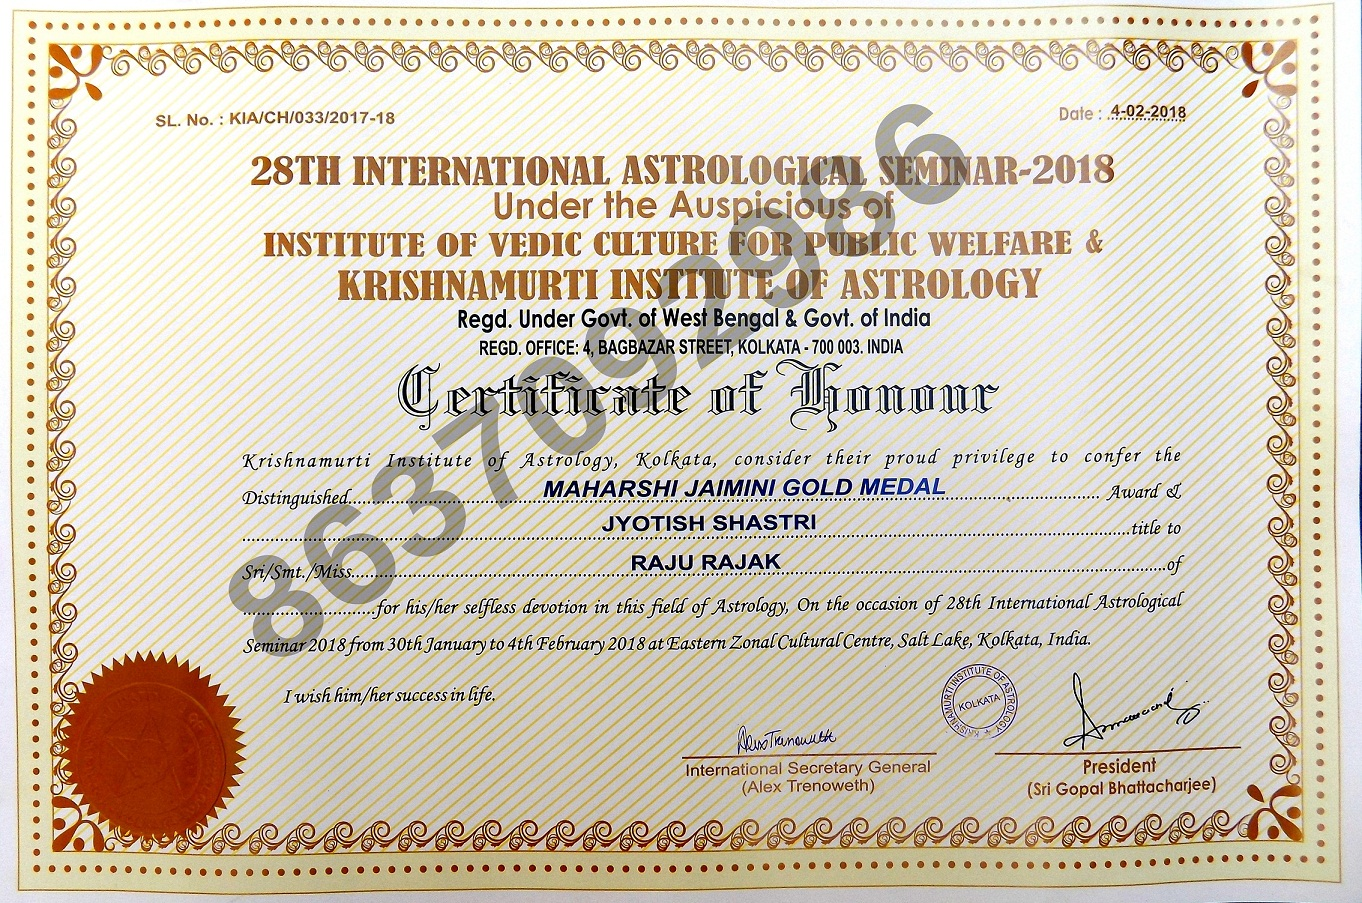 horoscope love match indian Free indian astrology website providing free horoscope and free astrology, indian astrologer, vedic astrology and 2018 free astrology readings.